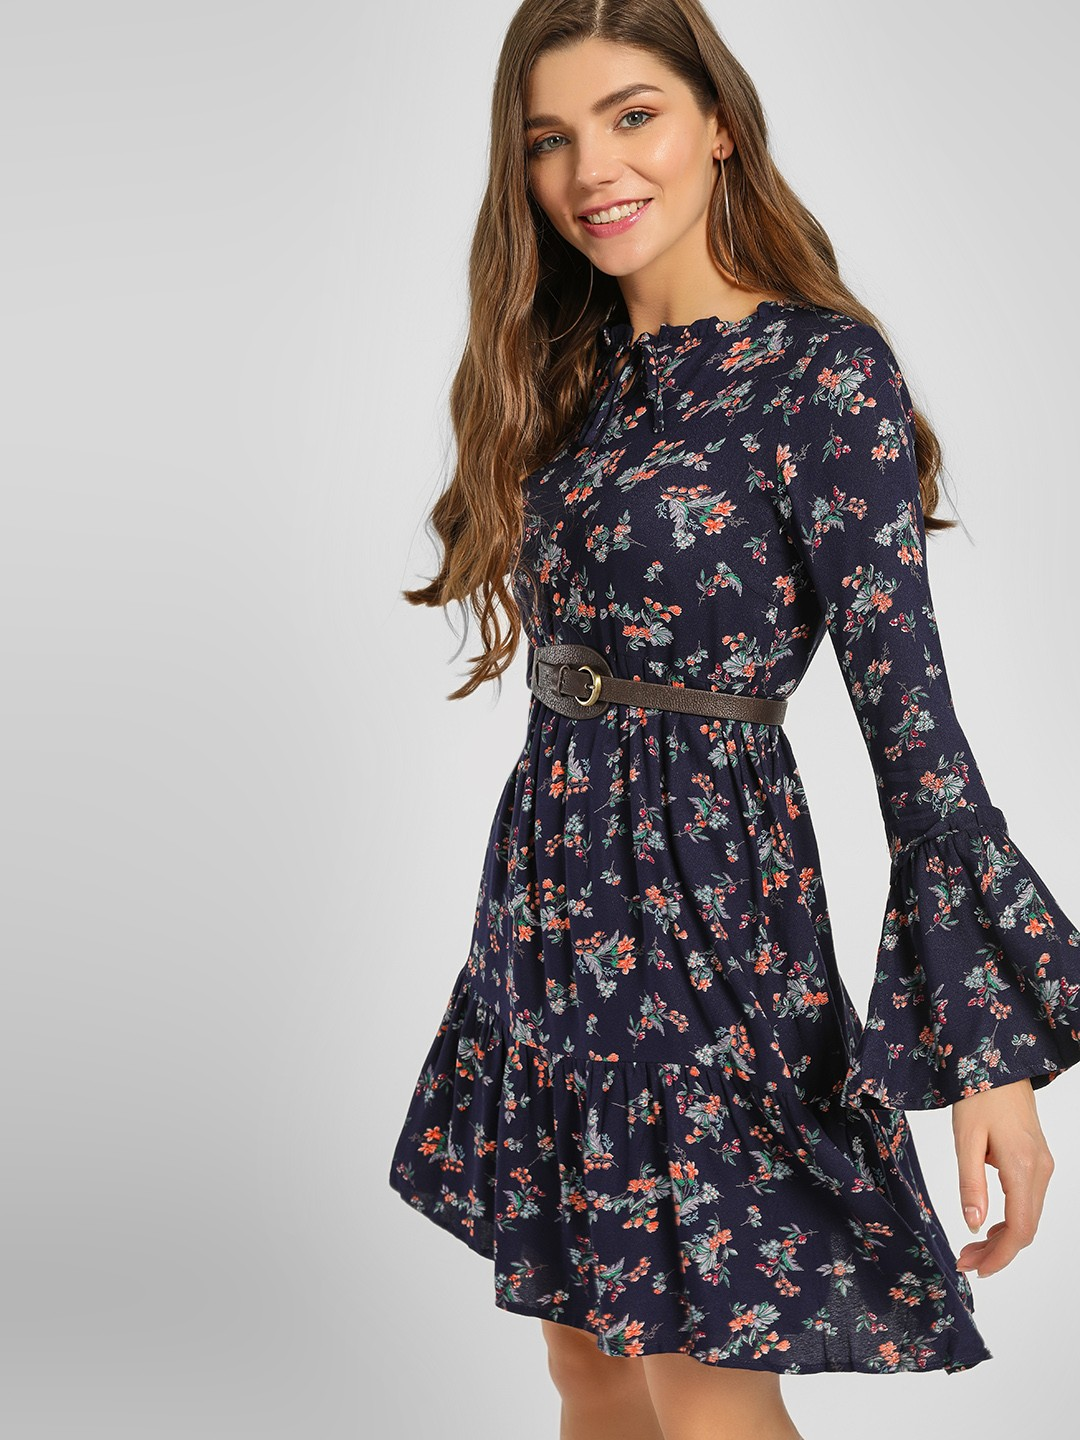 Lee Cooper Navy Blue Floral Print Tiered Shift Dress 1